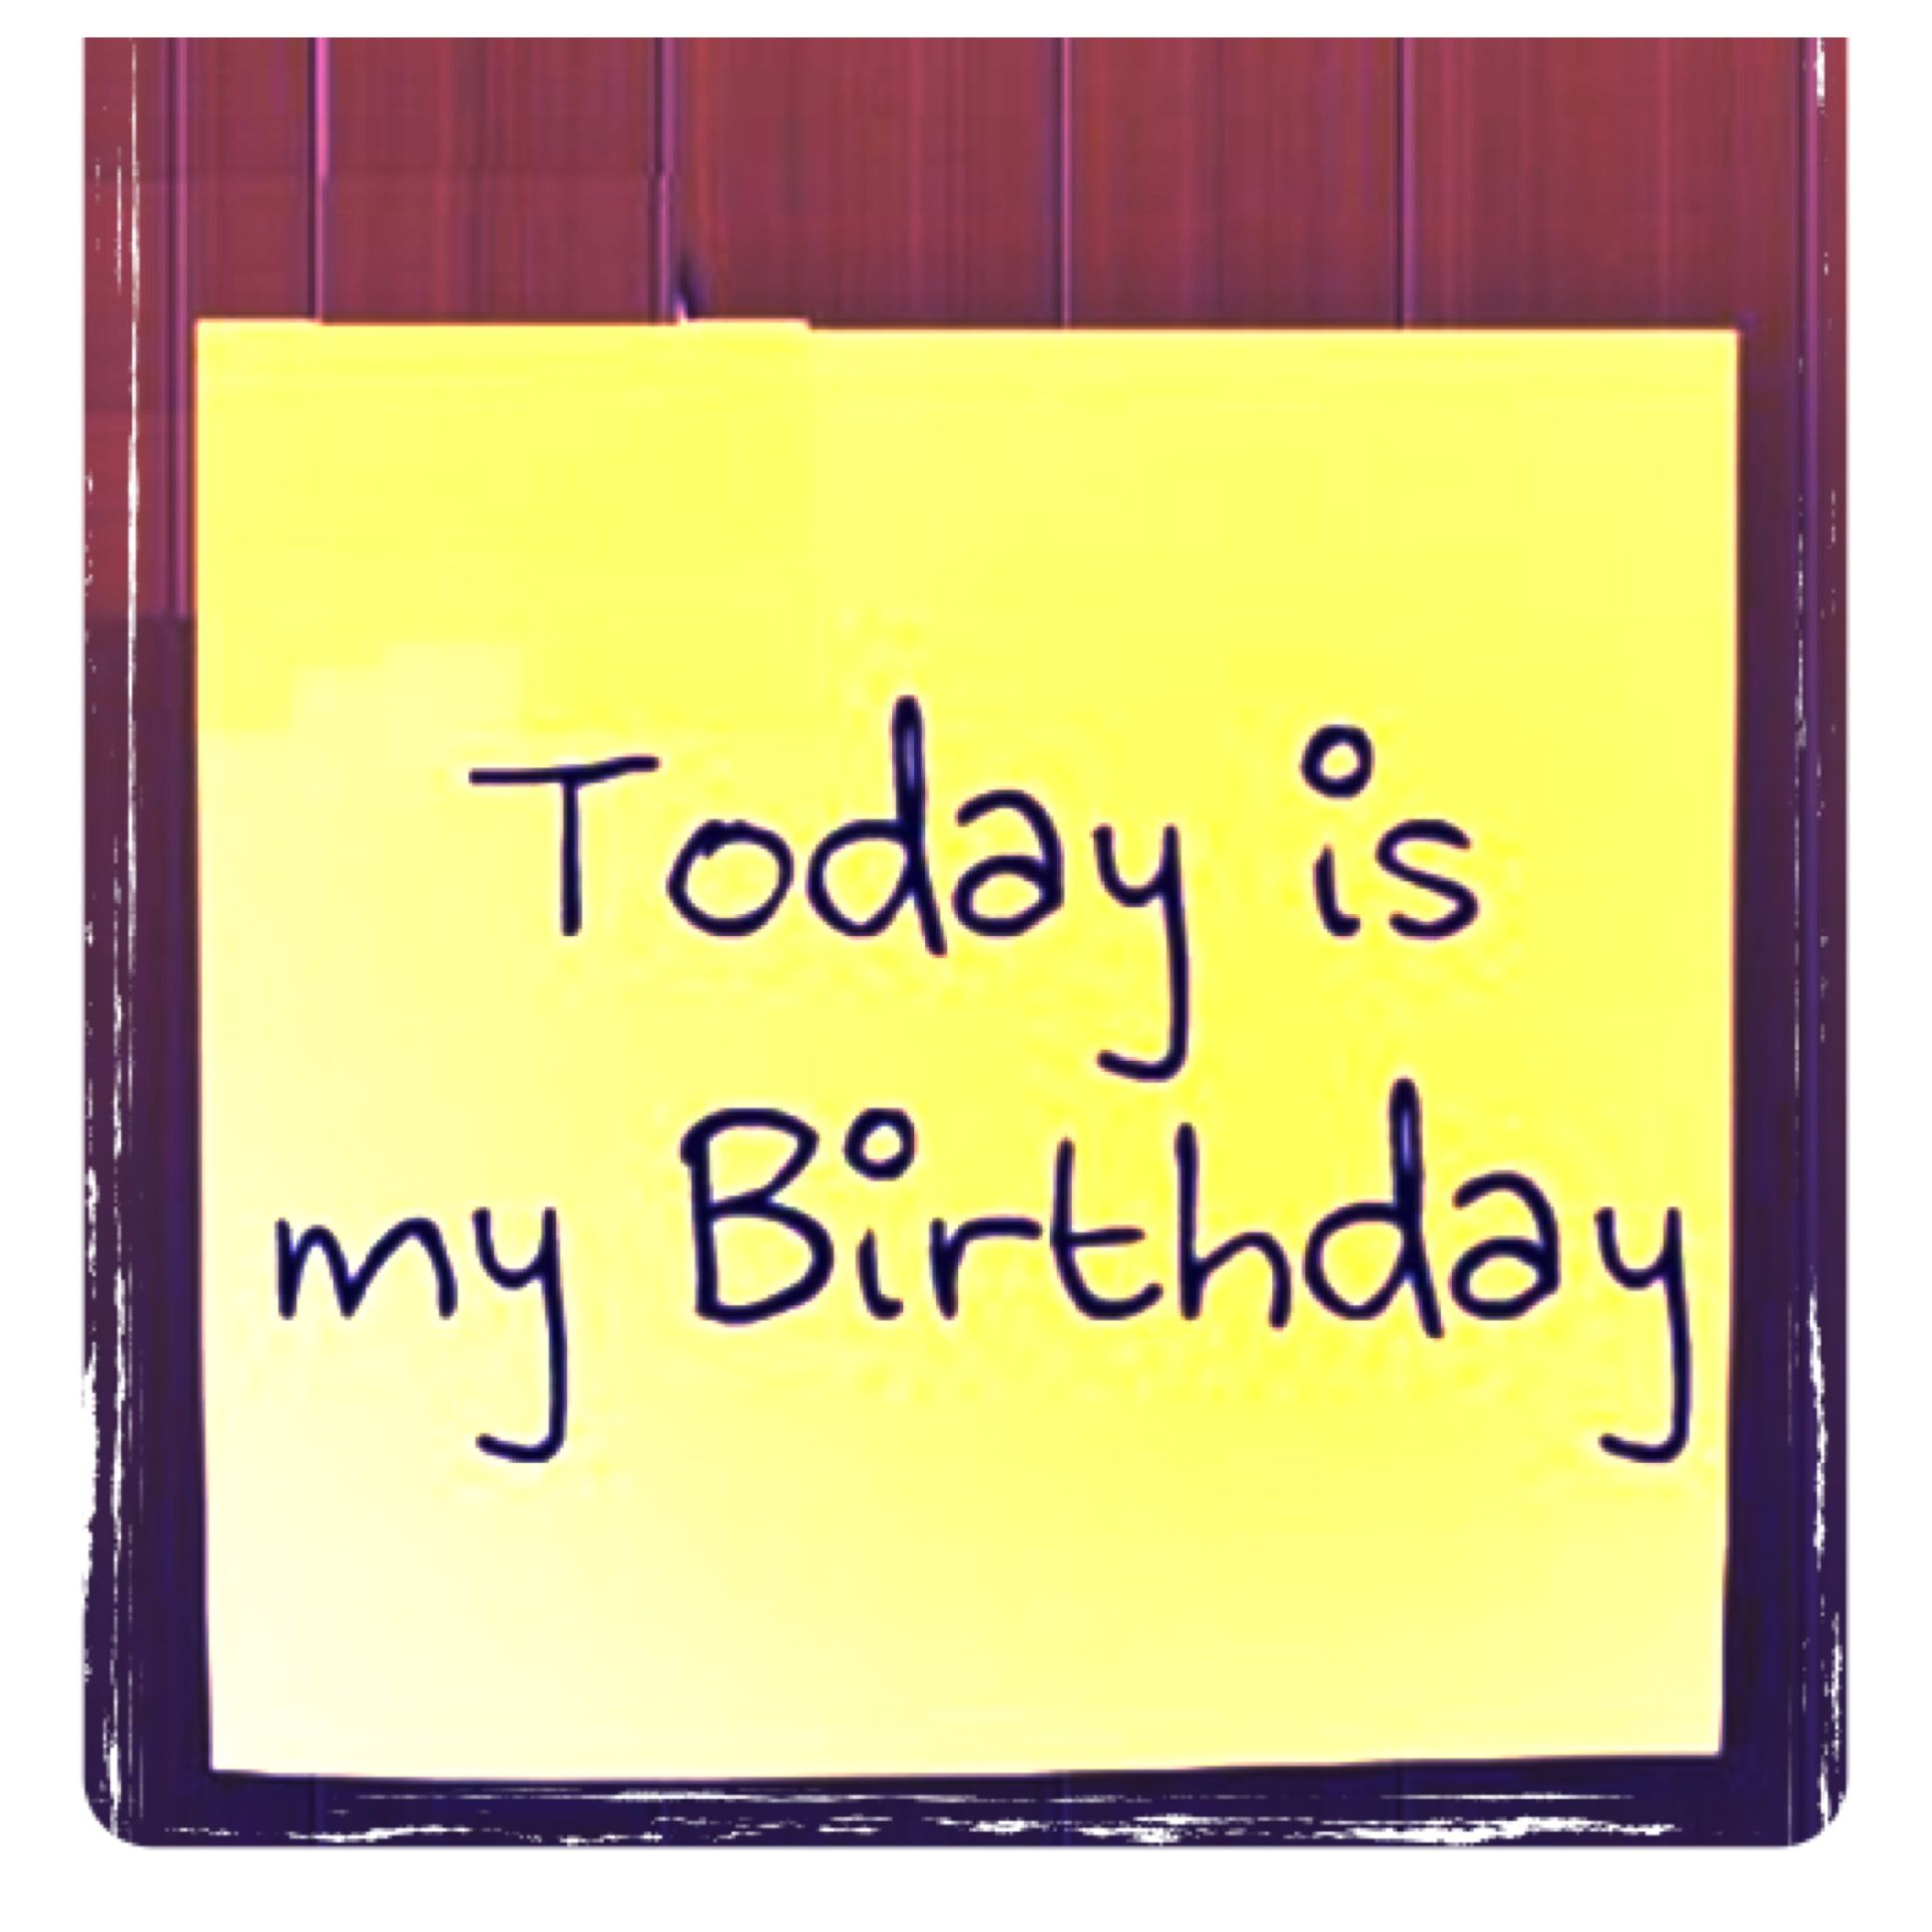 November 4th... Birthday wishes girl, Today is my